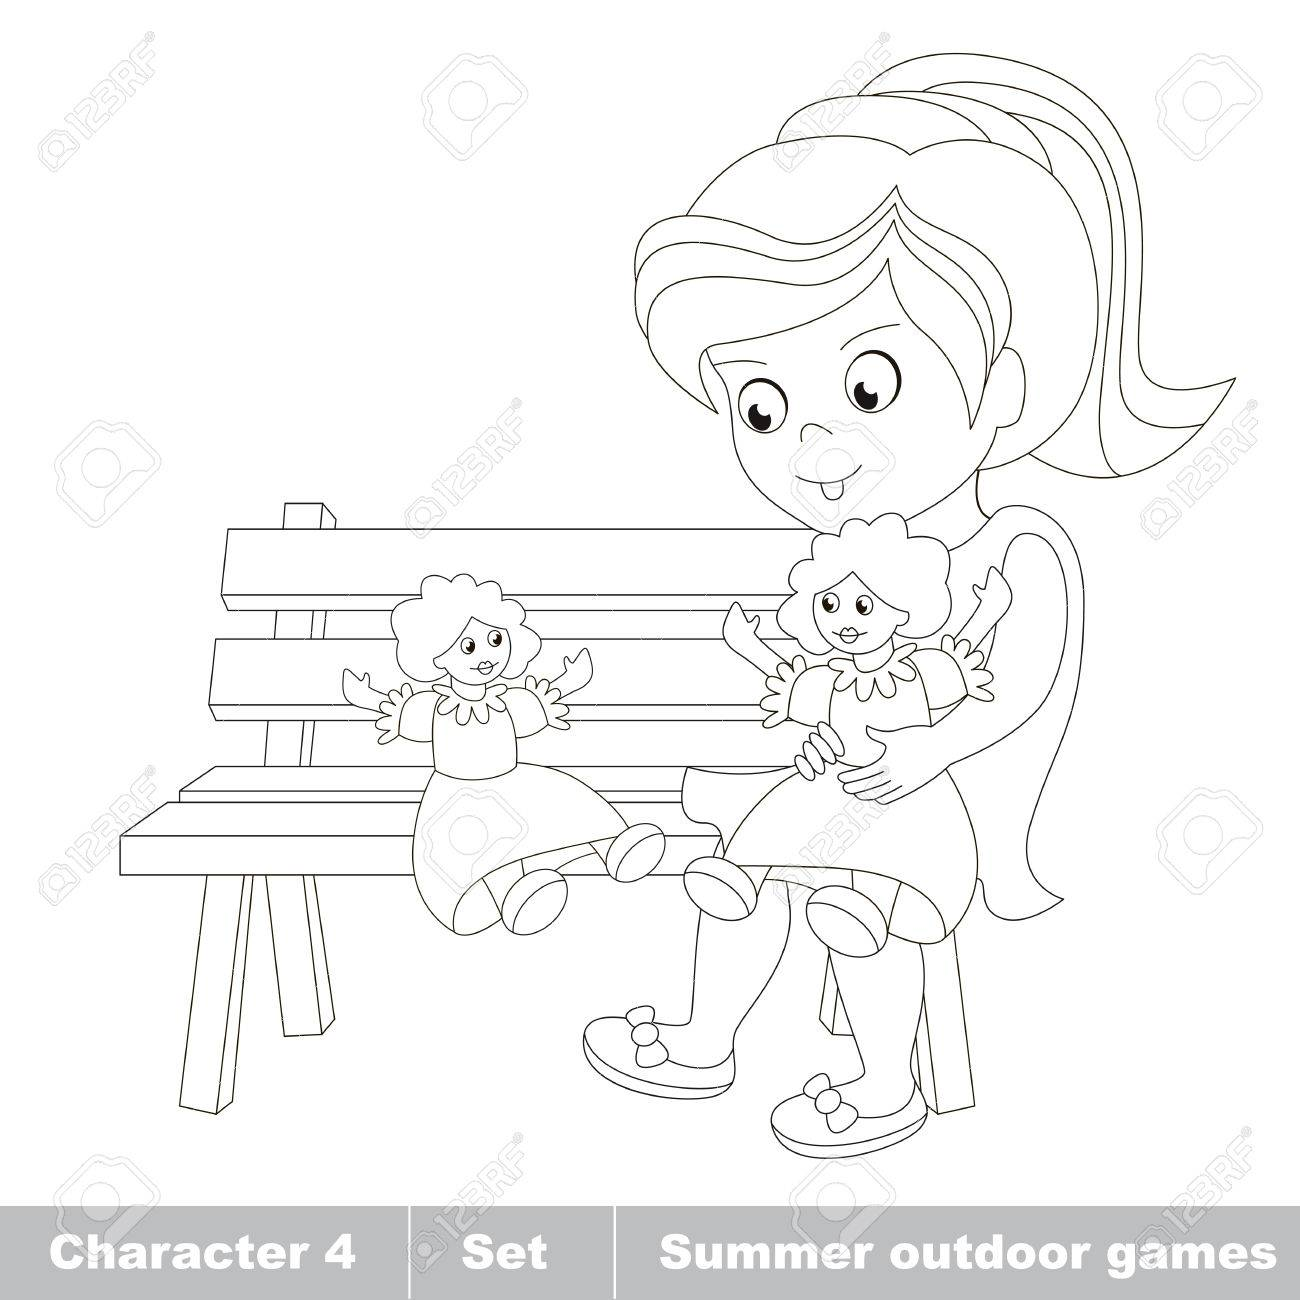 1300x1300 Page To Be Color. One Little Girl In Blue Dress Play With Her Toy